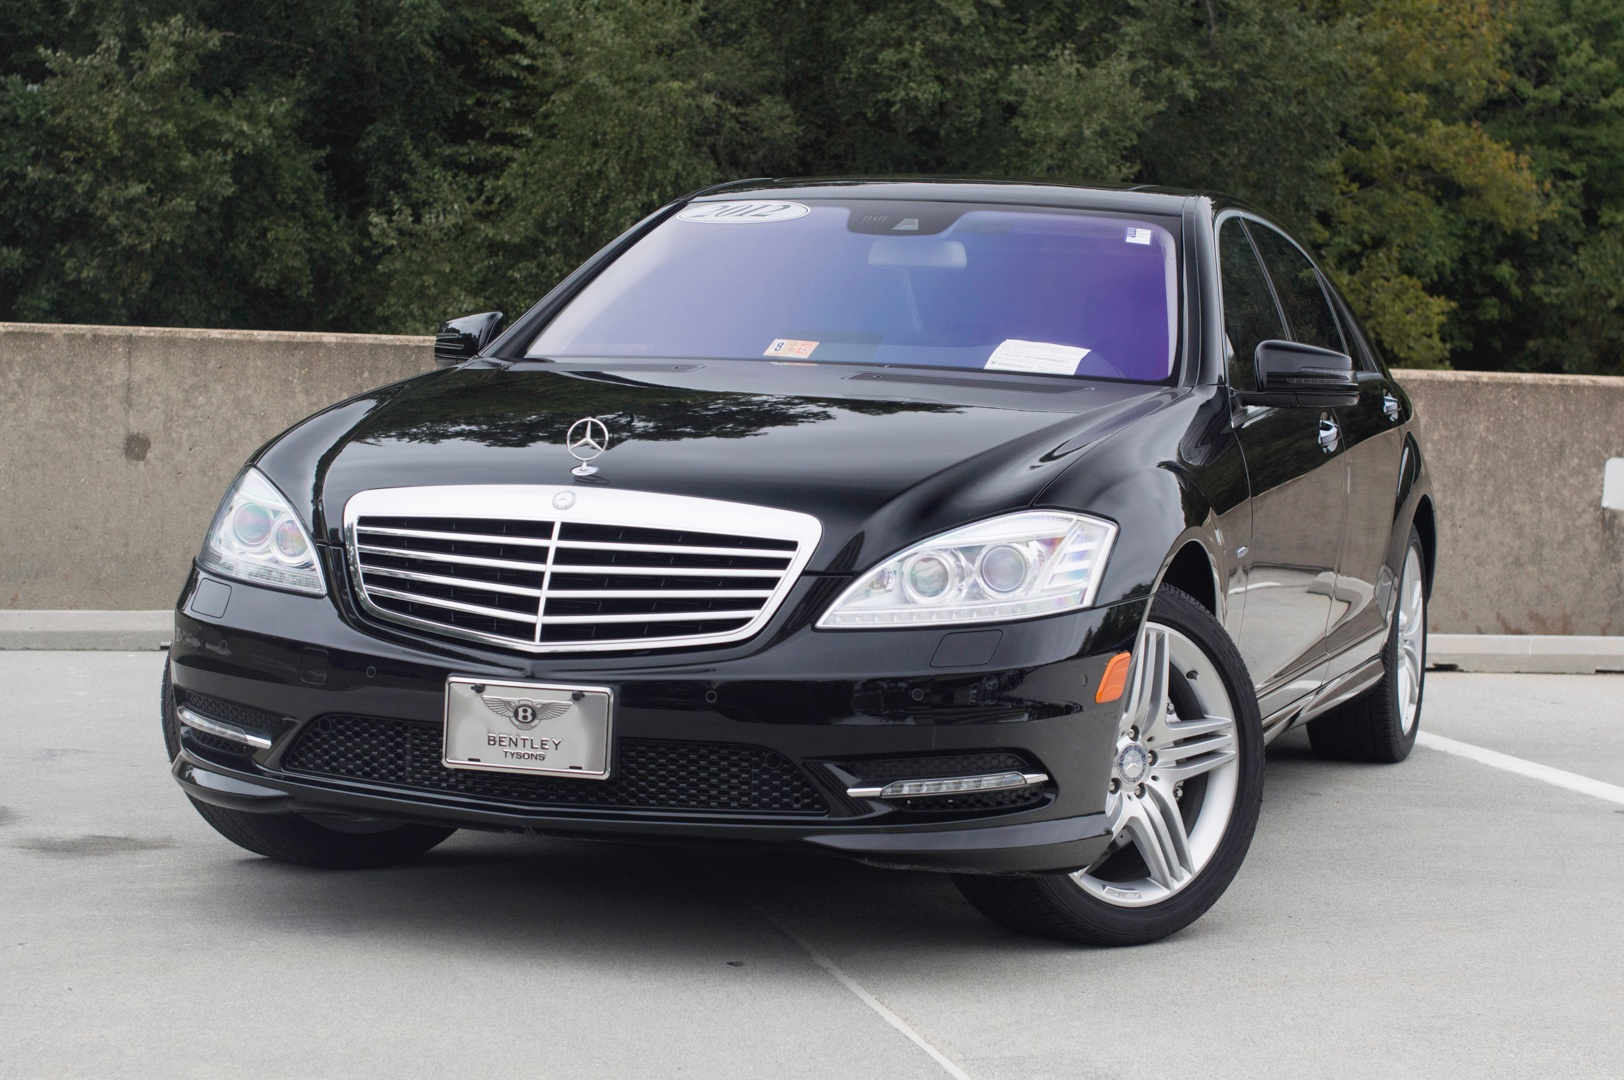 2012 mercedes benz s550 4matic s550 4matic stock p454190 for sale near vienna va va. Black Bedroom Furniture Sets. Home Design Ideas